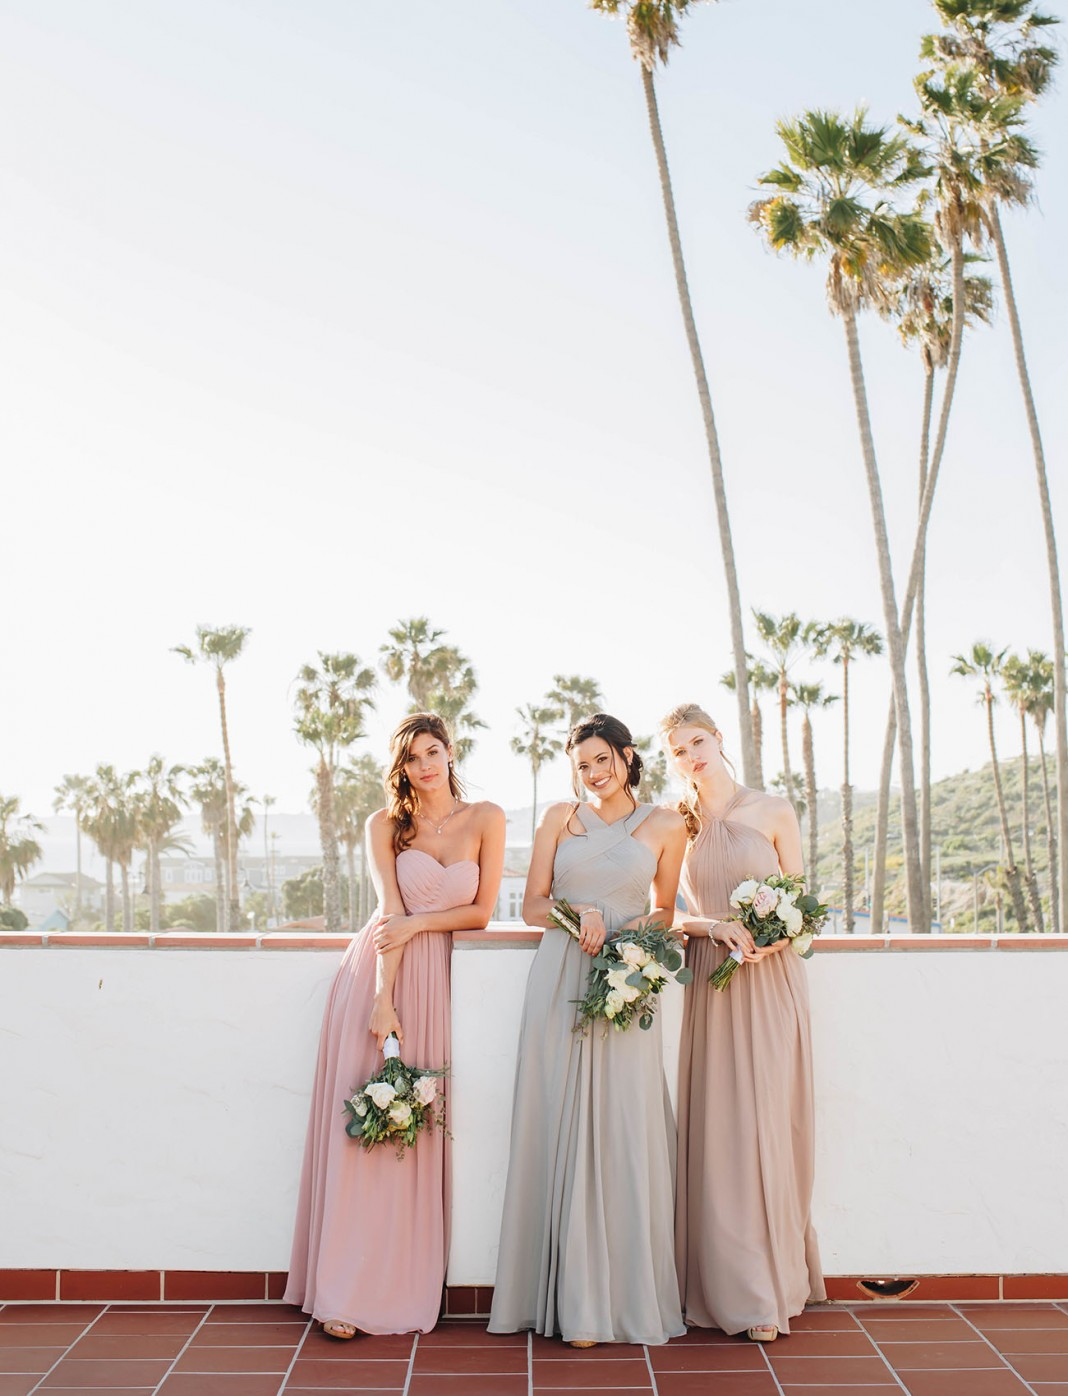 Dreamy Dresses for the Bride + Bridesmaids from Azazie